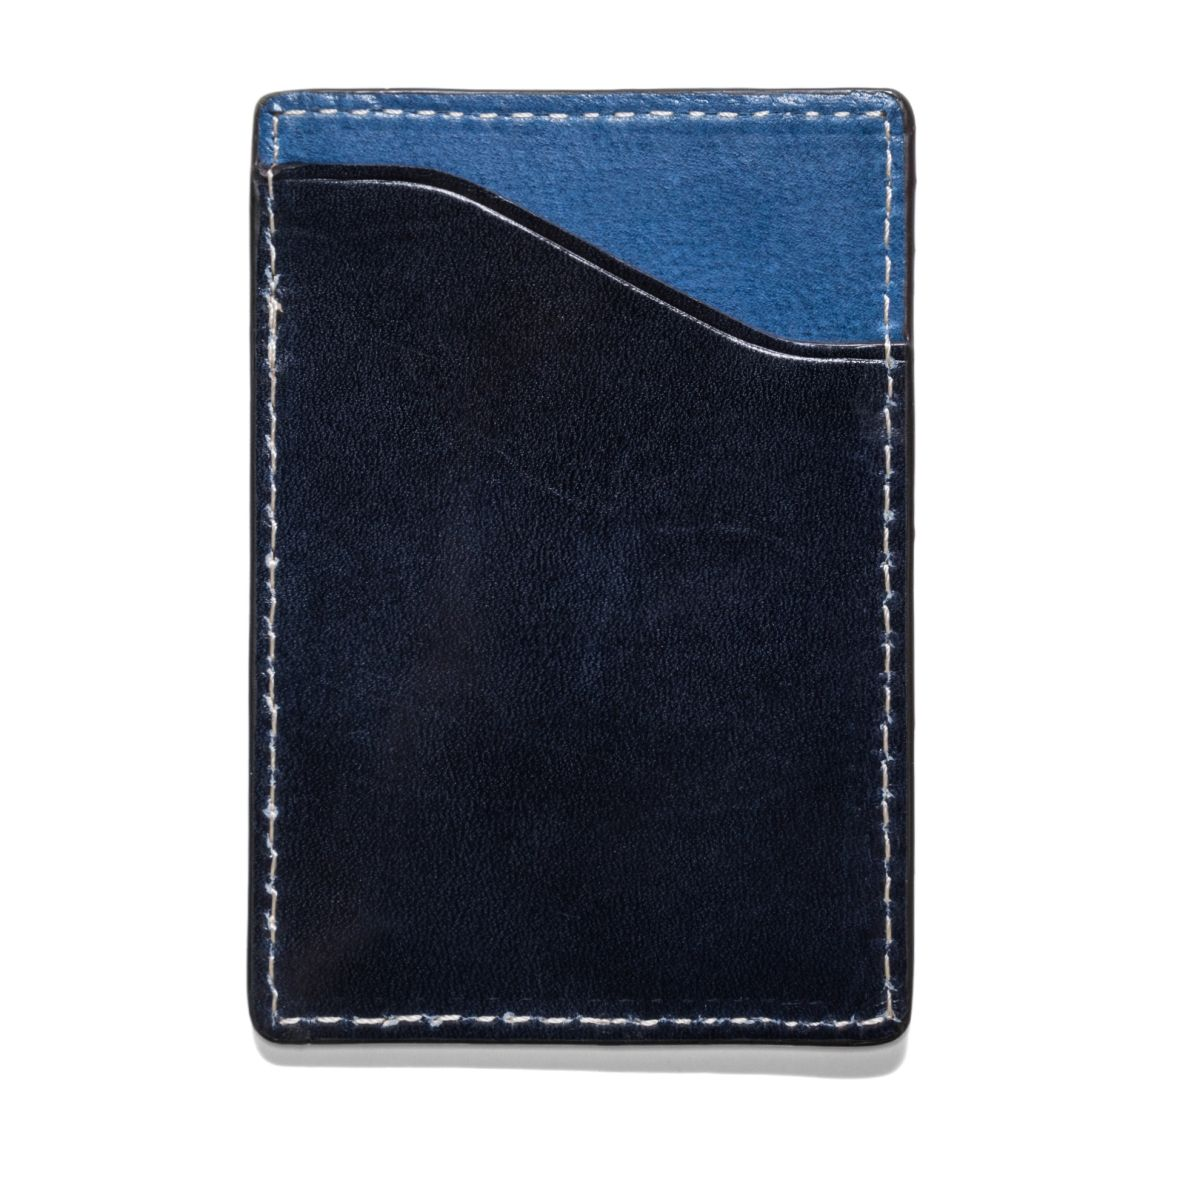 FLAT STASH Leather Wallet - Dark Navy